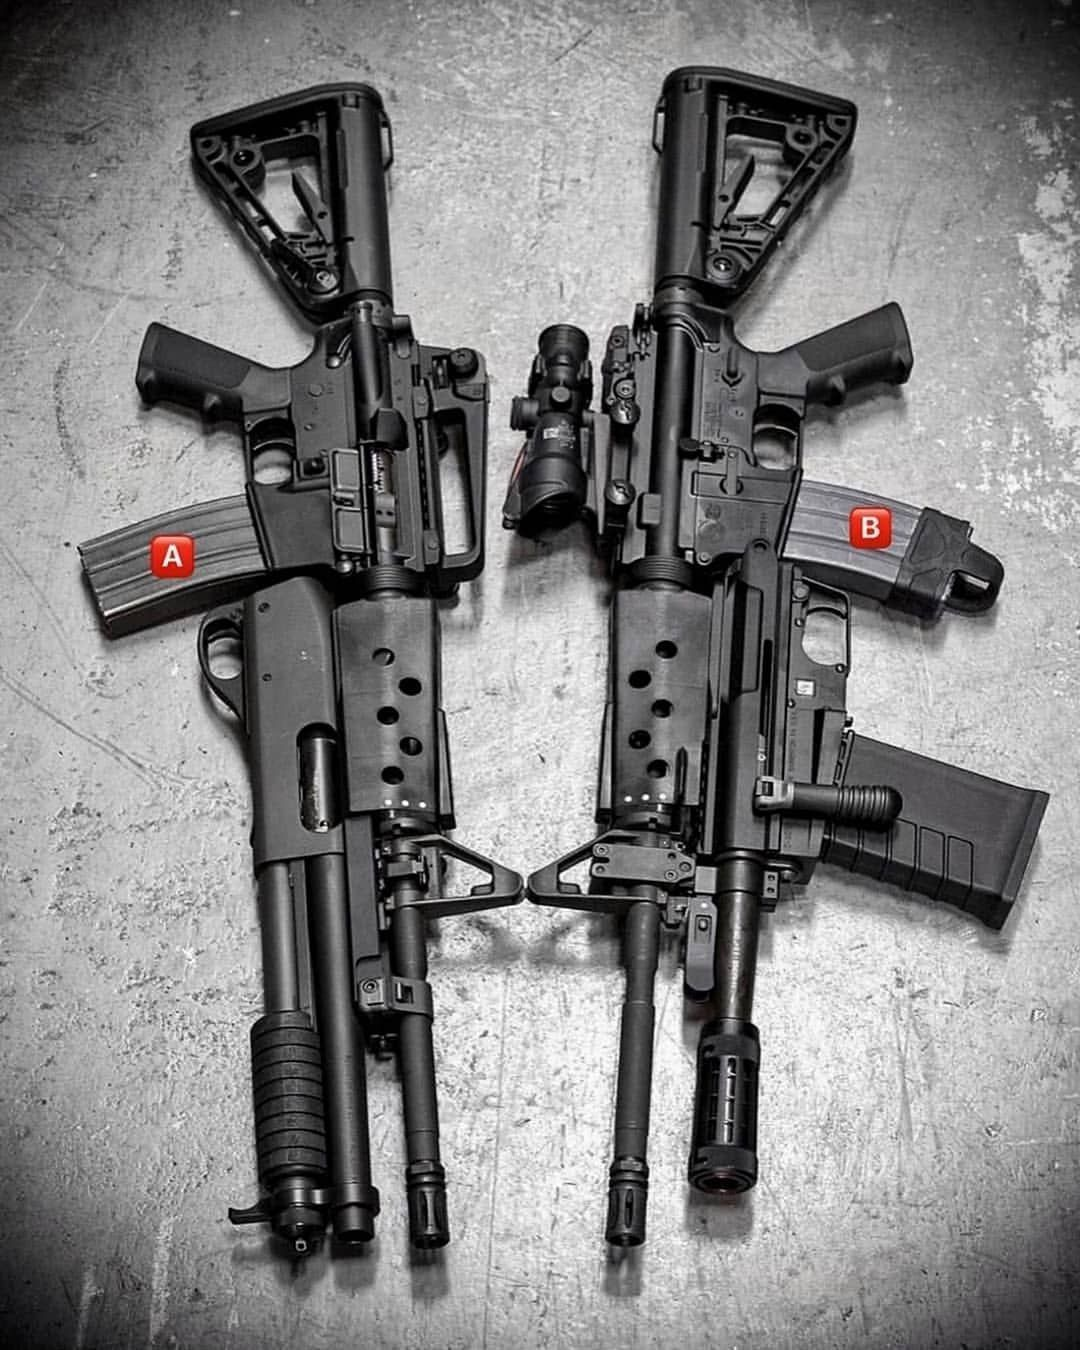 Guns Az MilitaryさんはInstagramを利用しています:「A or B ? . . . Follow me @gunsazmilitary Invite your friends to my page